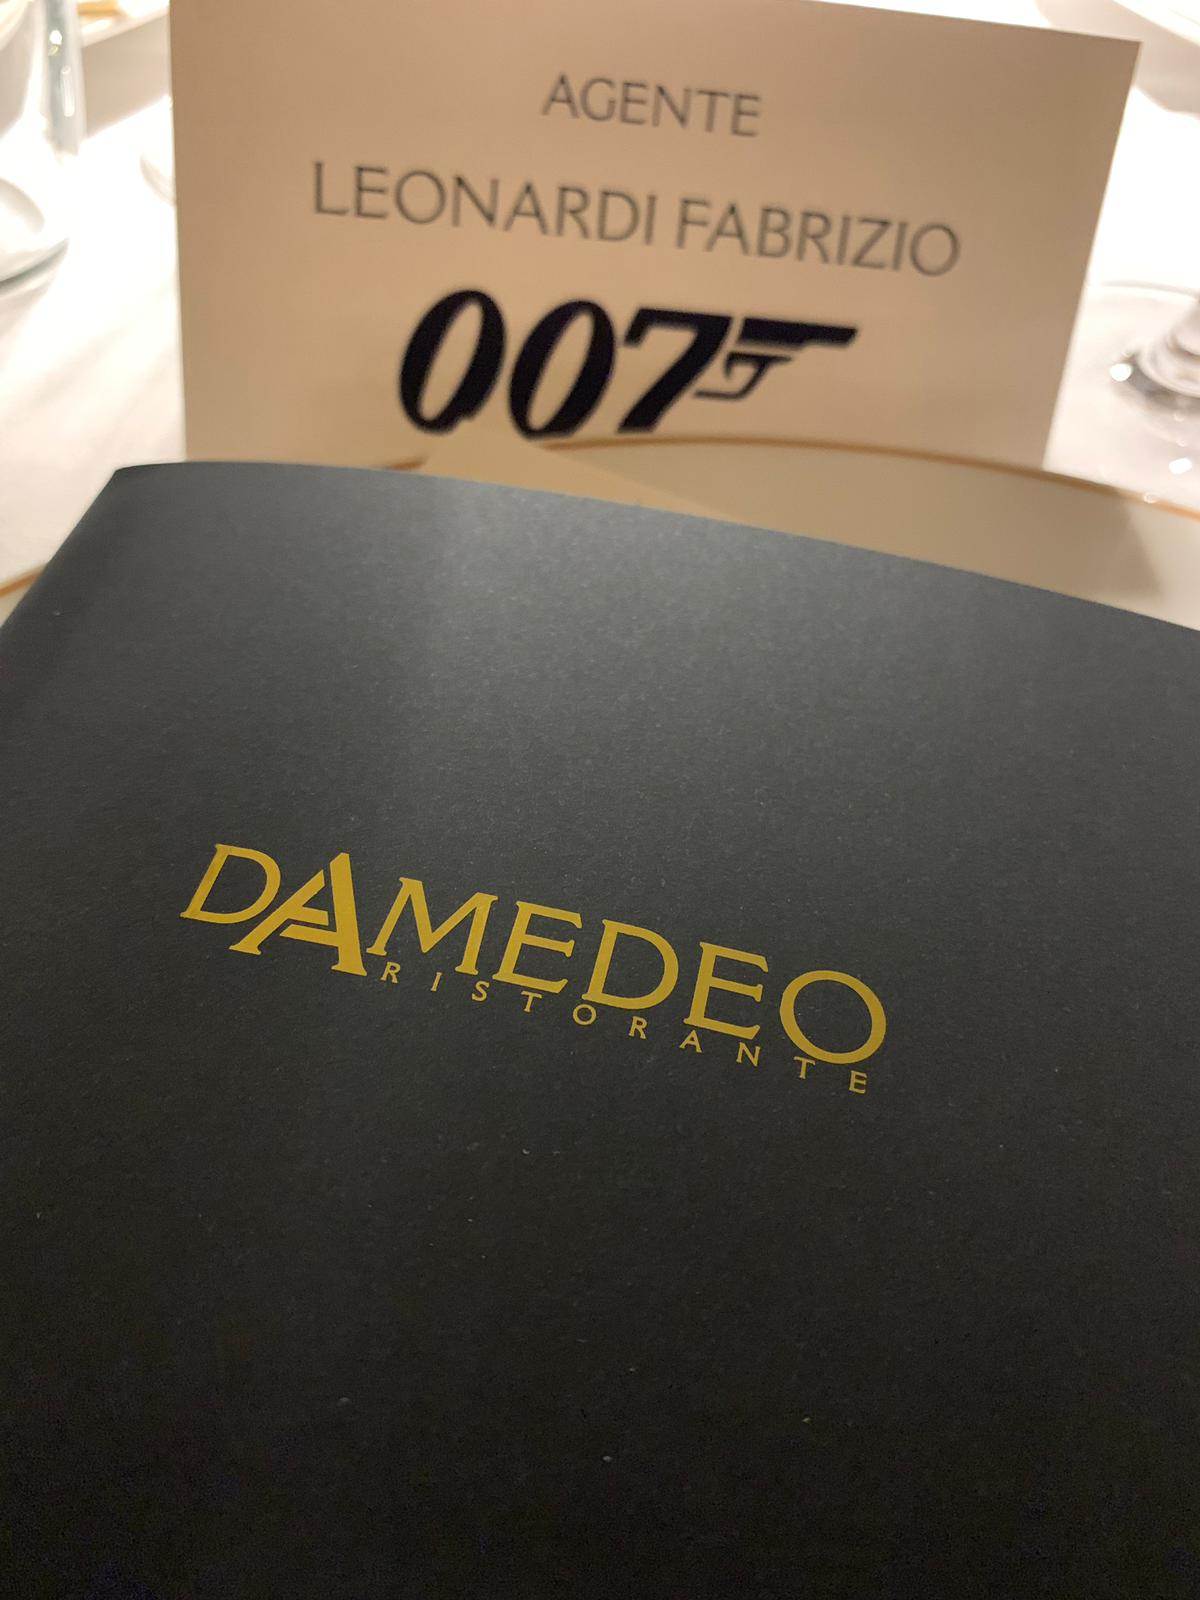 James Bond Damedeo - Menù